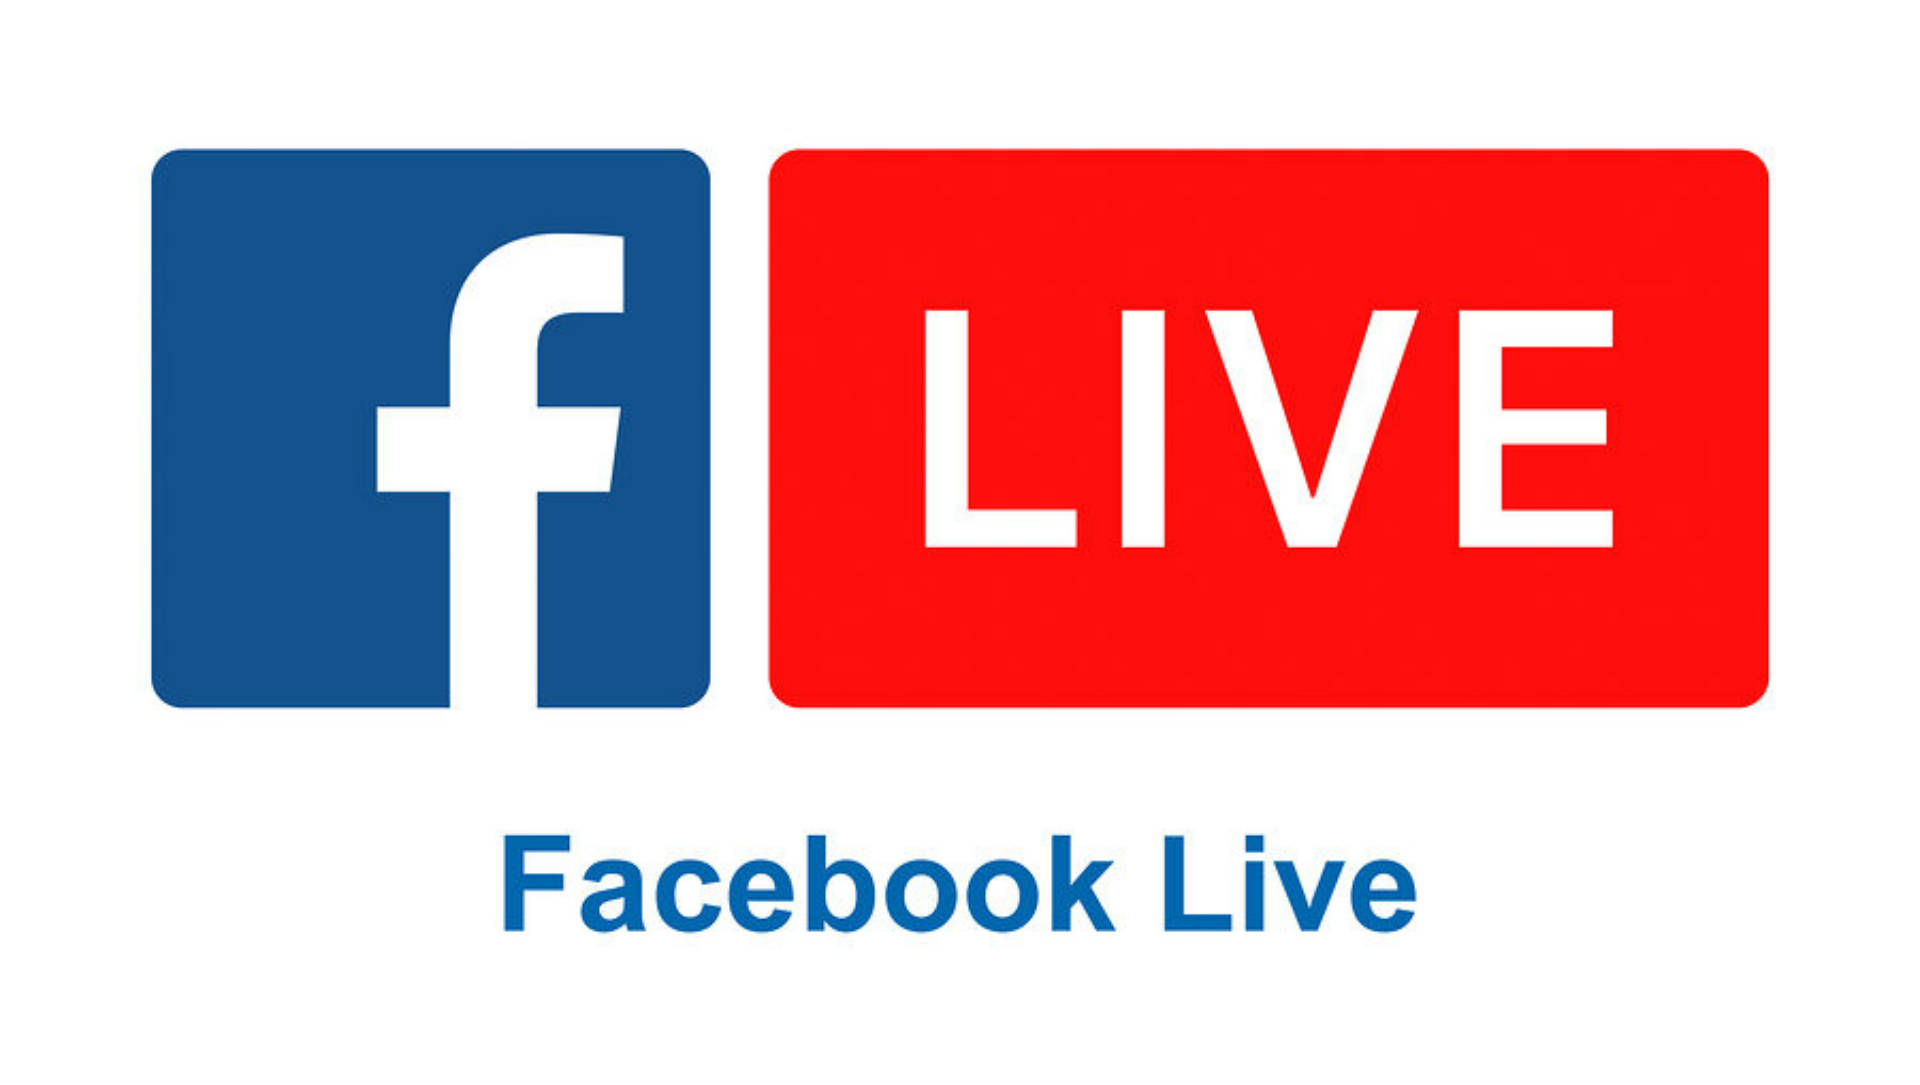 Everything you need to know about Facebook Live